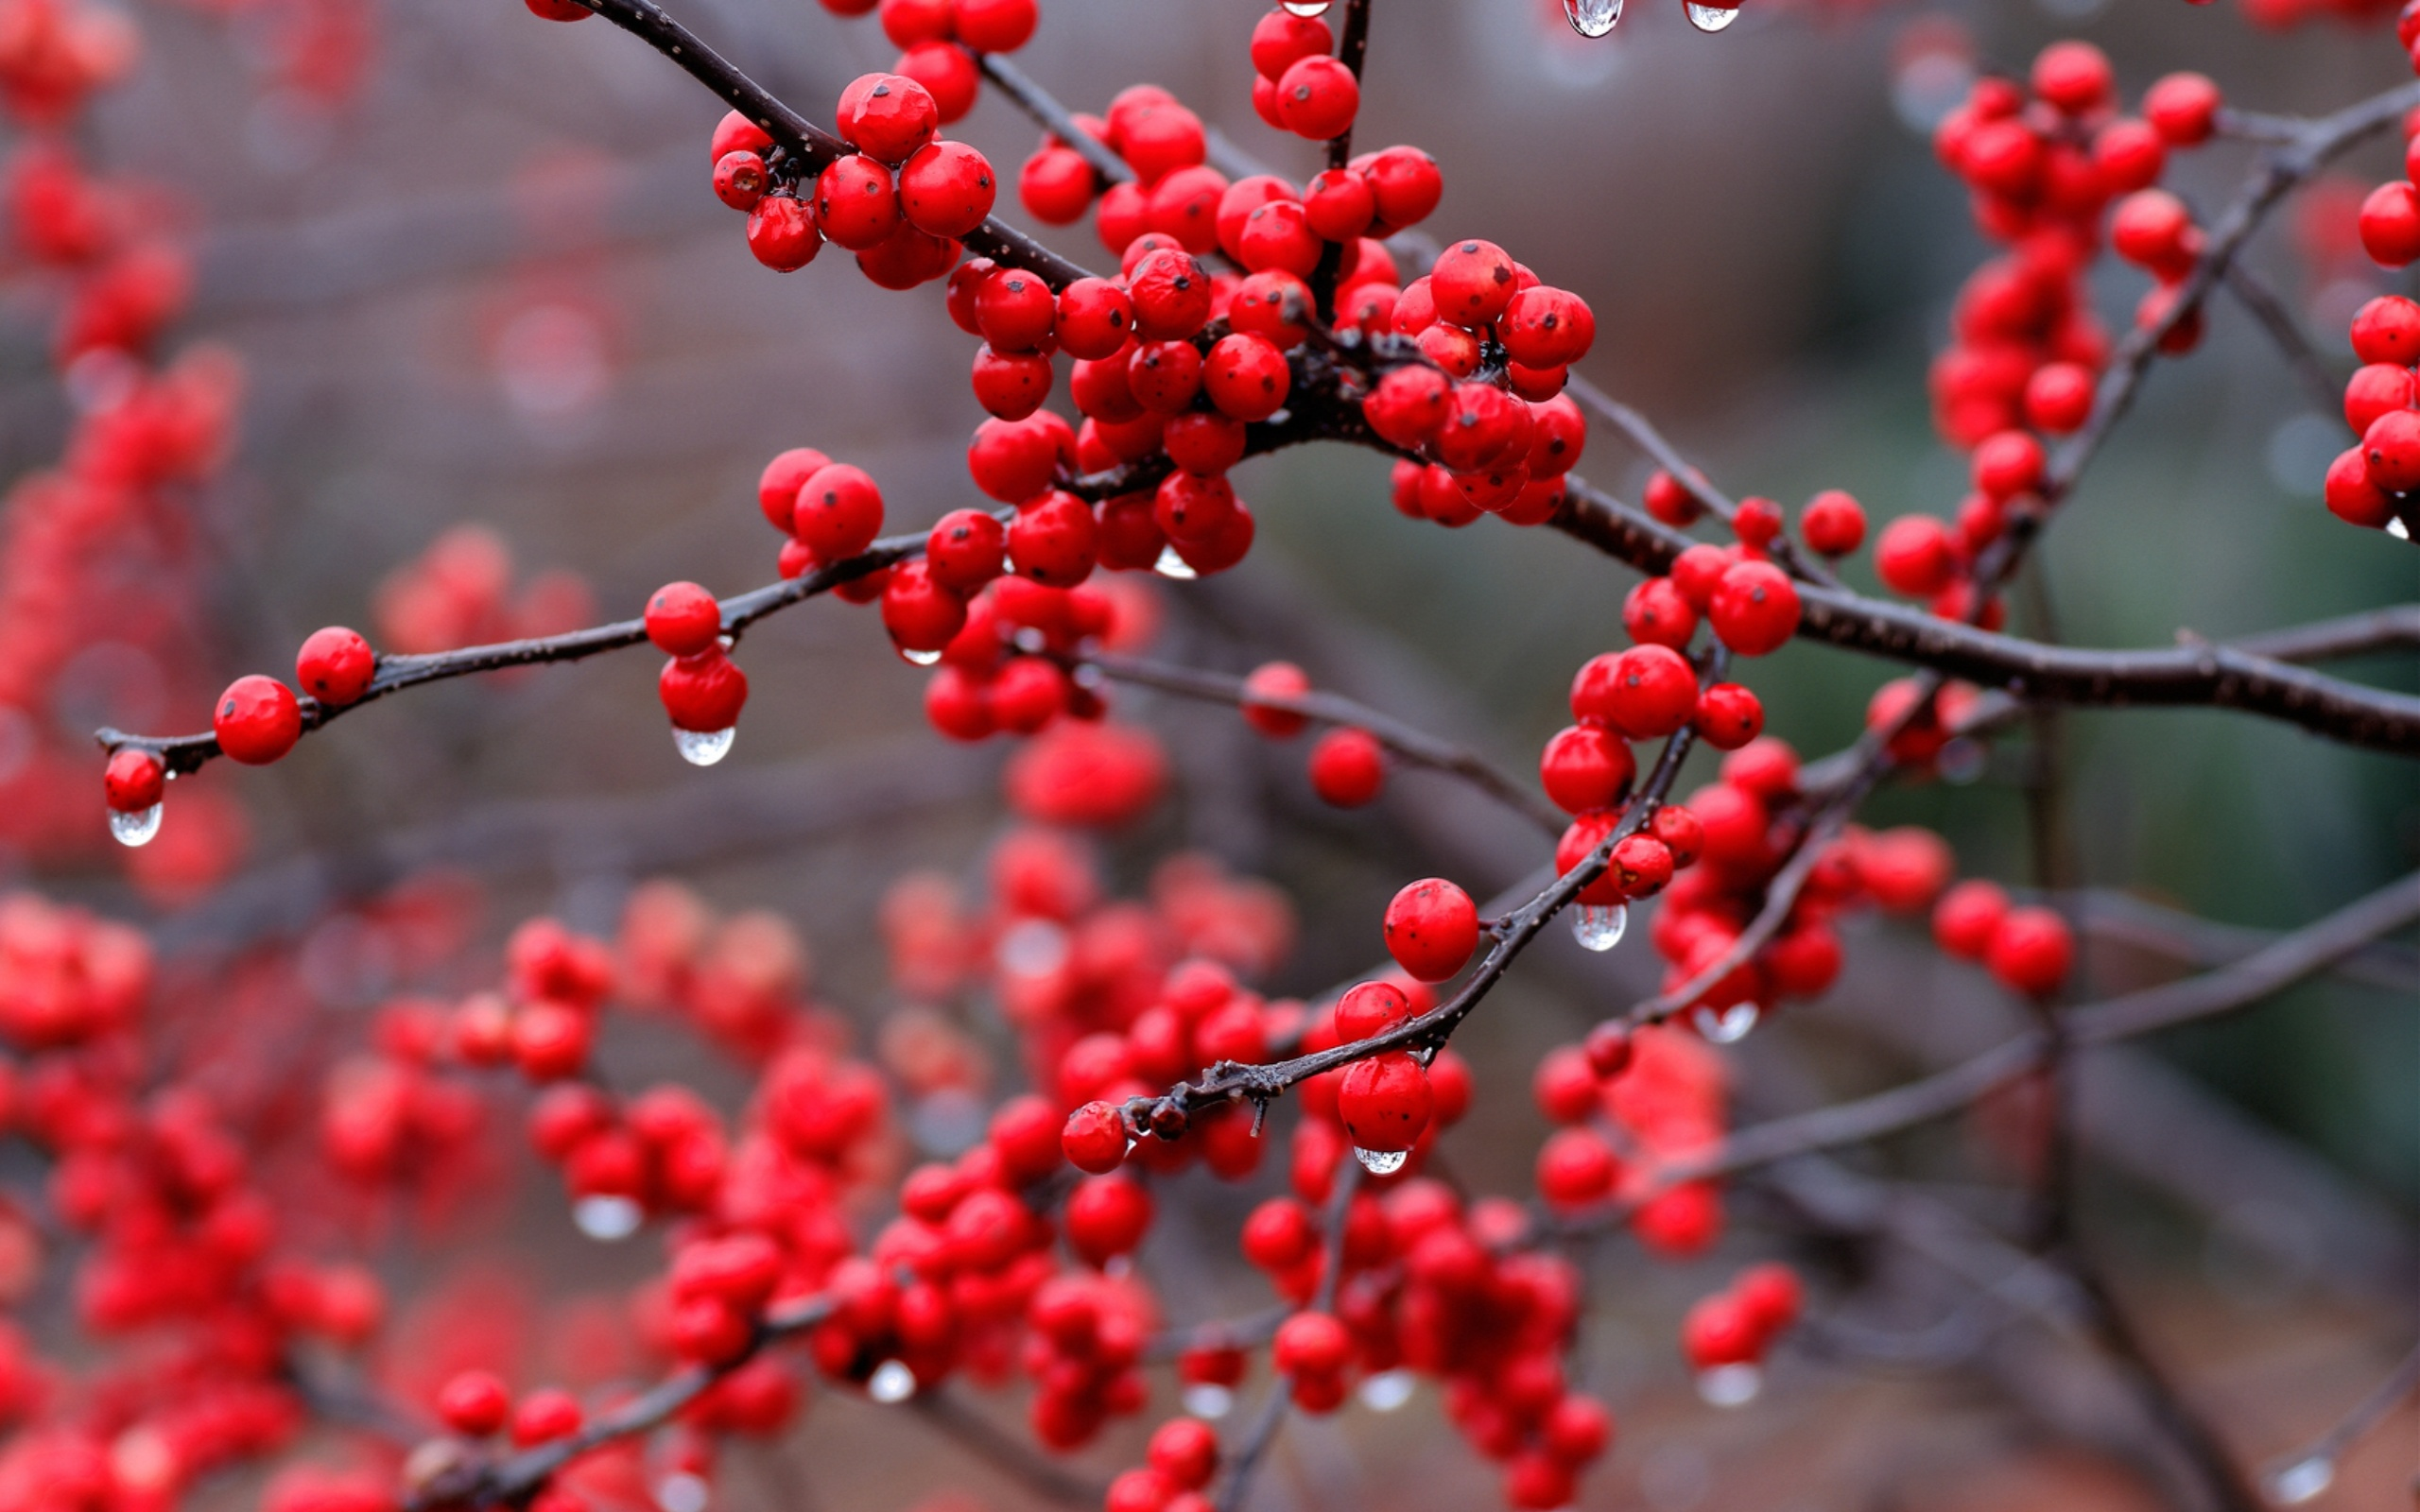 Tree Branch with Red Berries